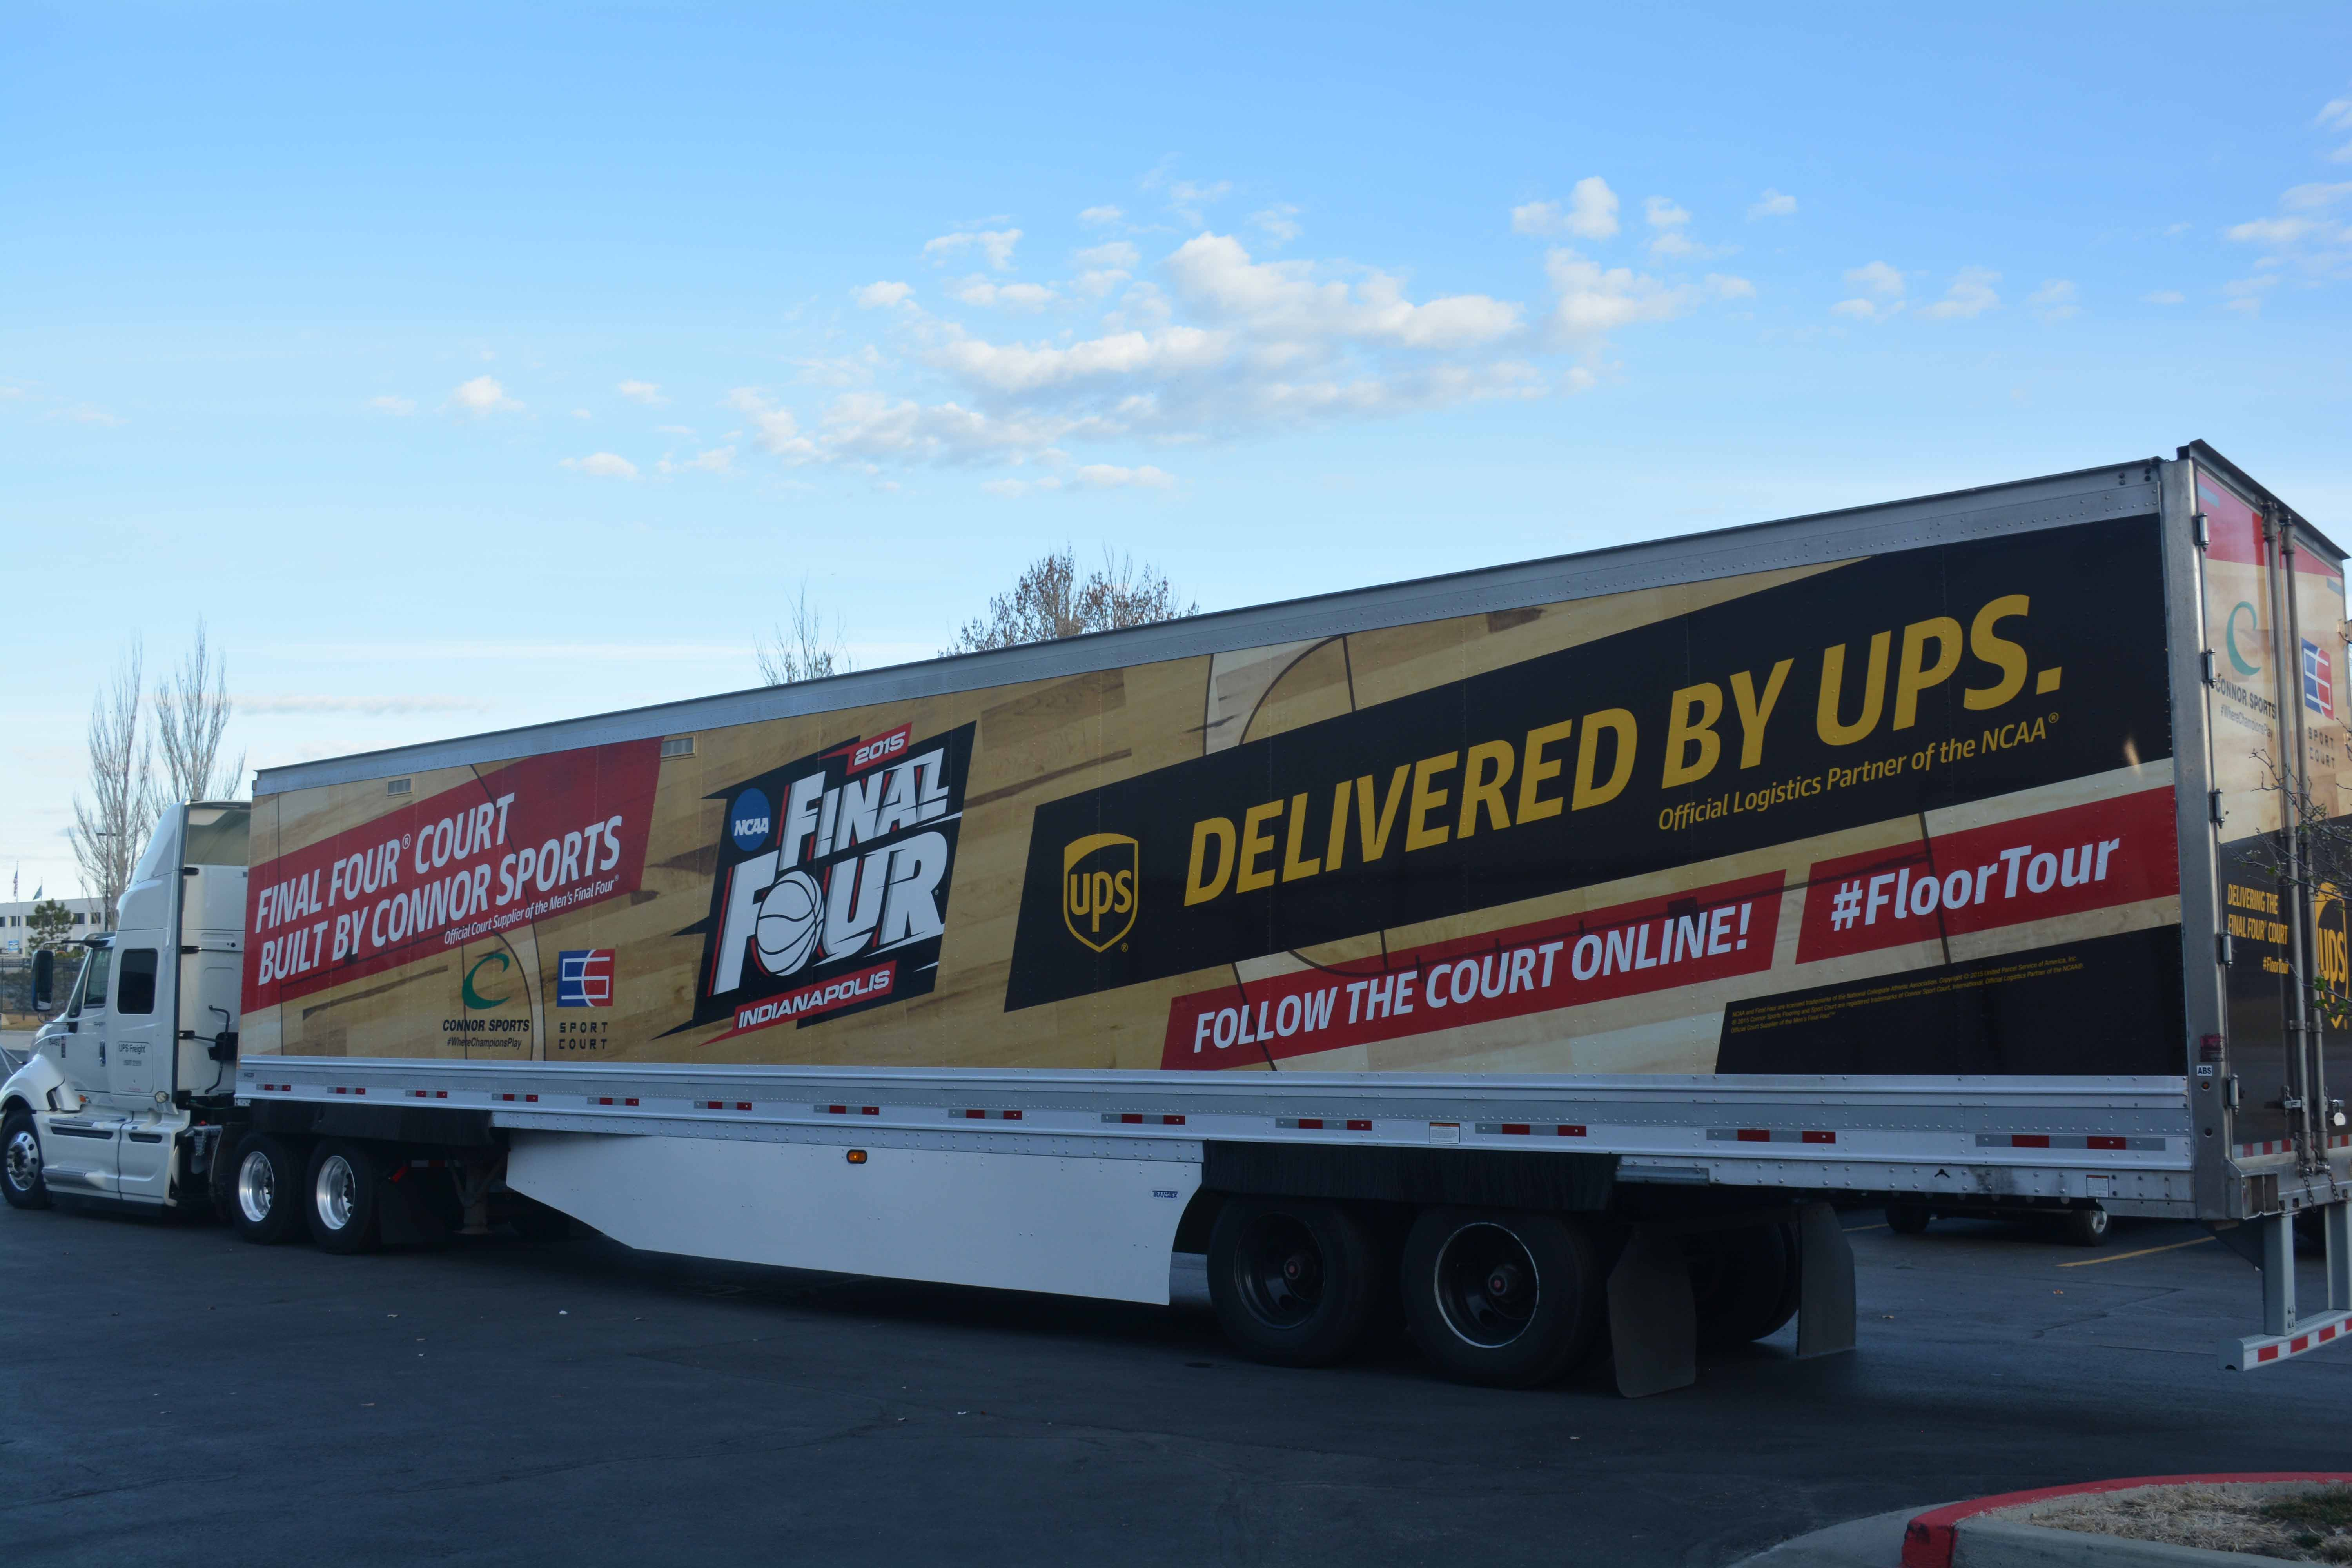 Connor Sports, Sport Court and UPS Joined Forces to Bring the Final Four Court Tour on the Road